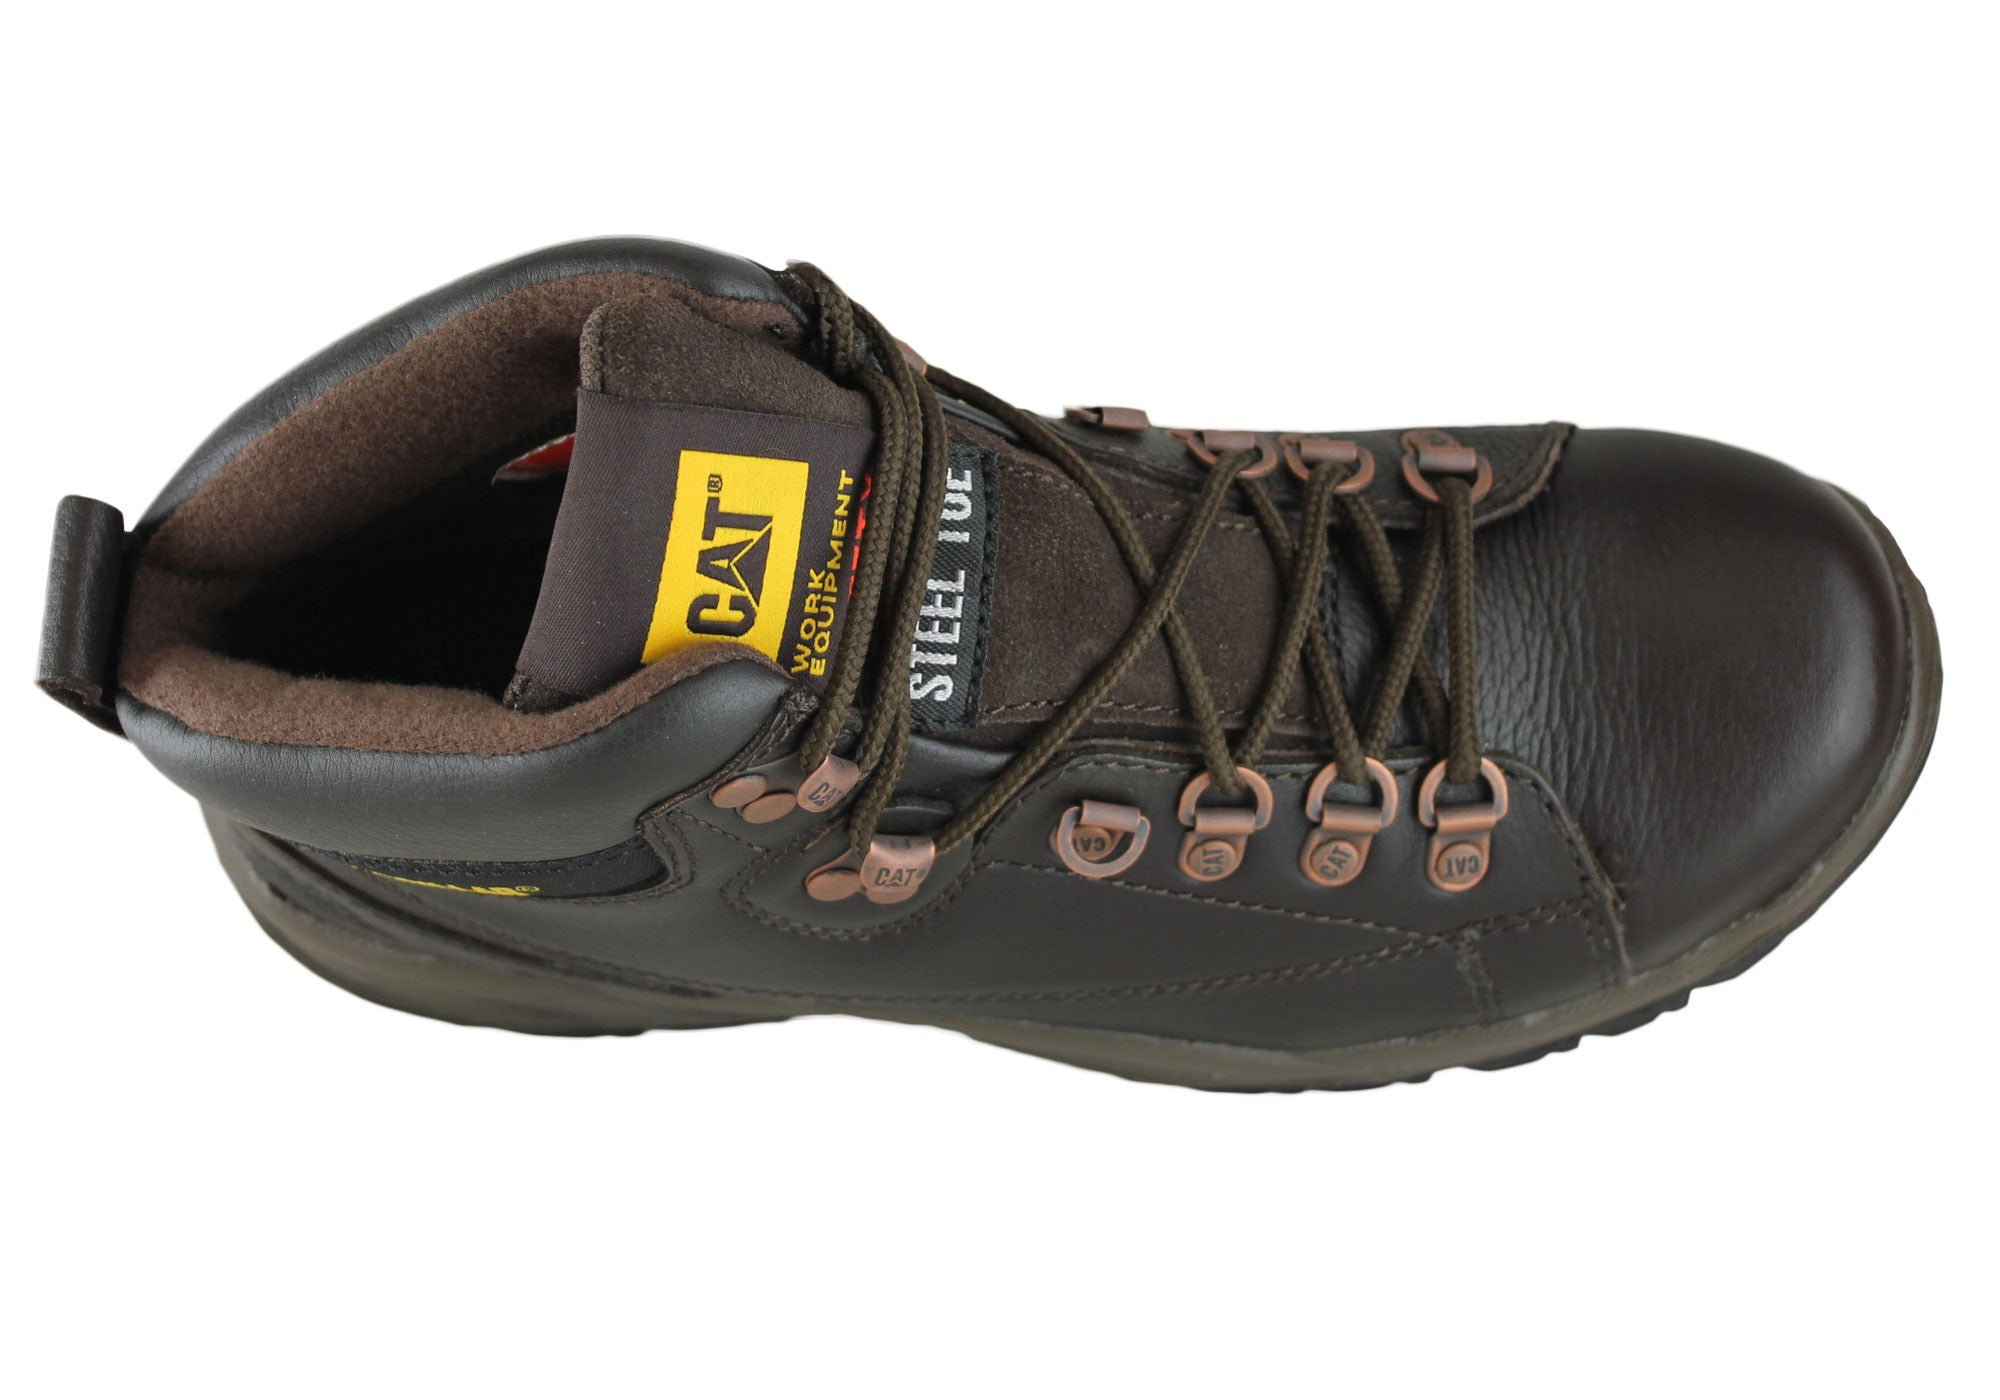 Caterpillar Cat Mens Extend Steel Toe Safety Boots